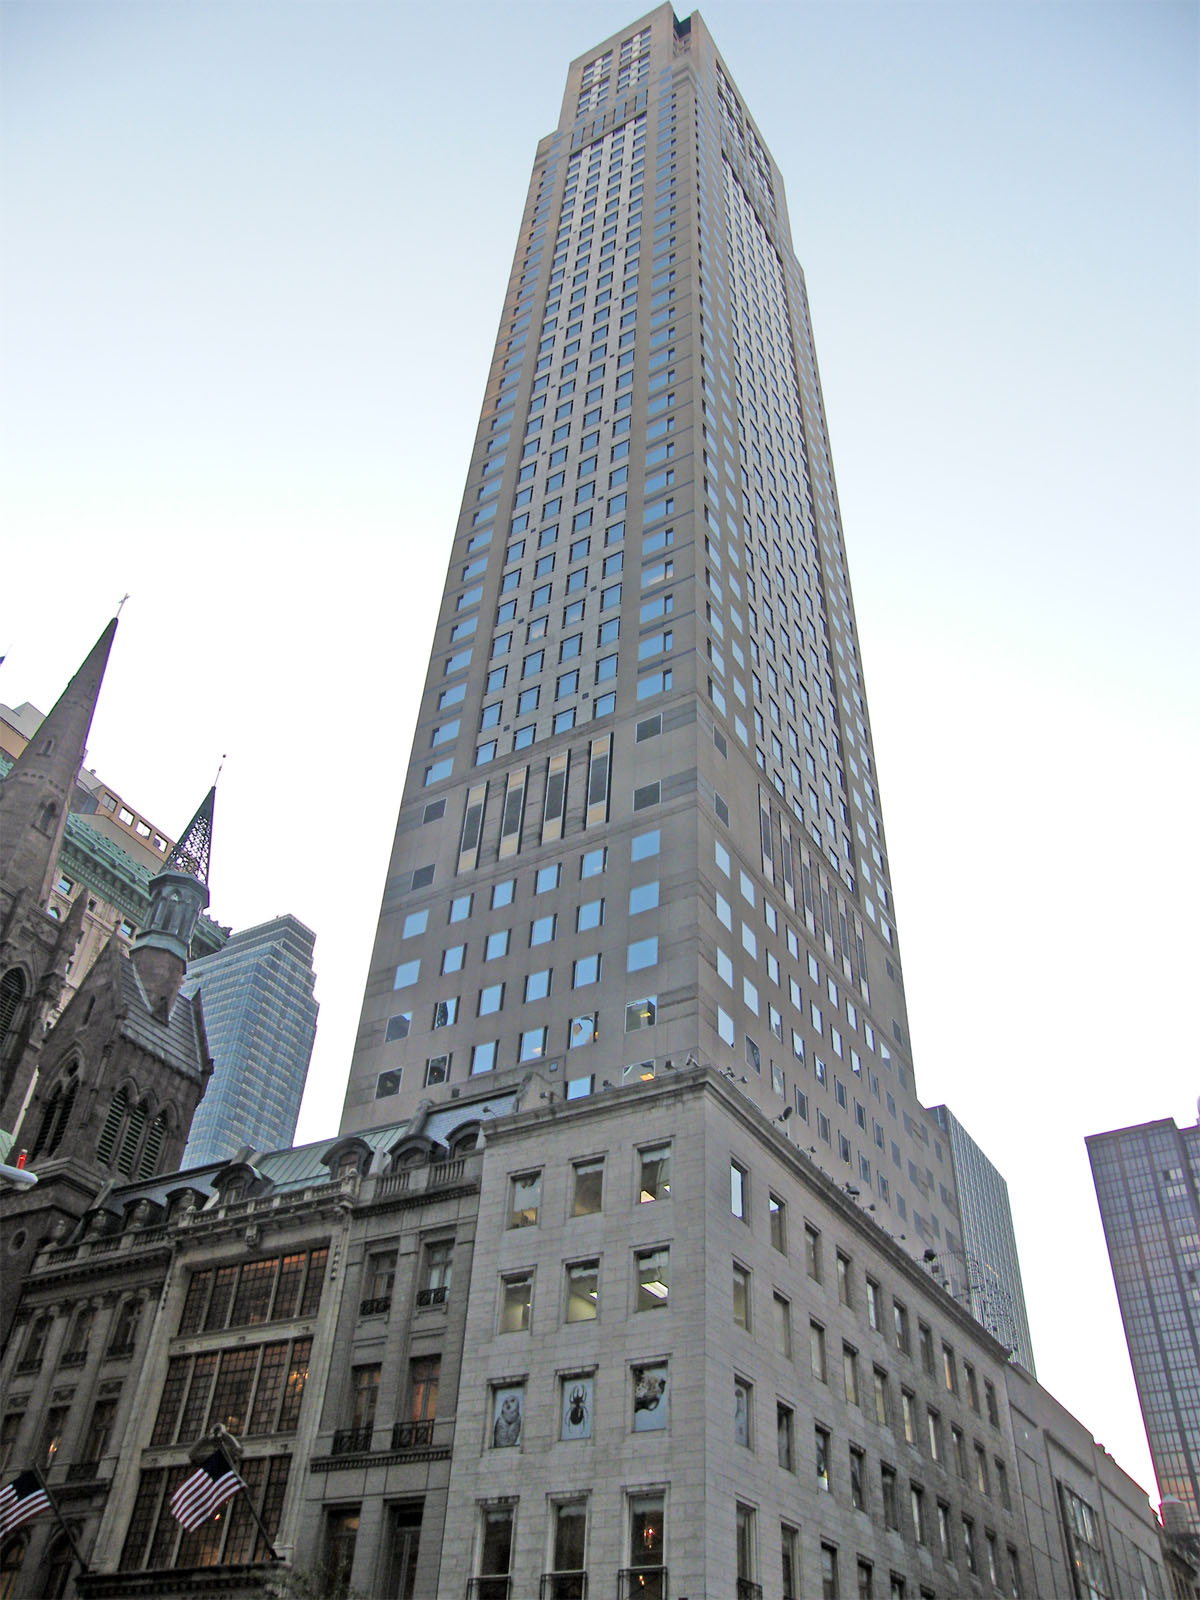 712 fifth avenue wikipedia for 200 5th ave 8th floor new york ny 10010